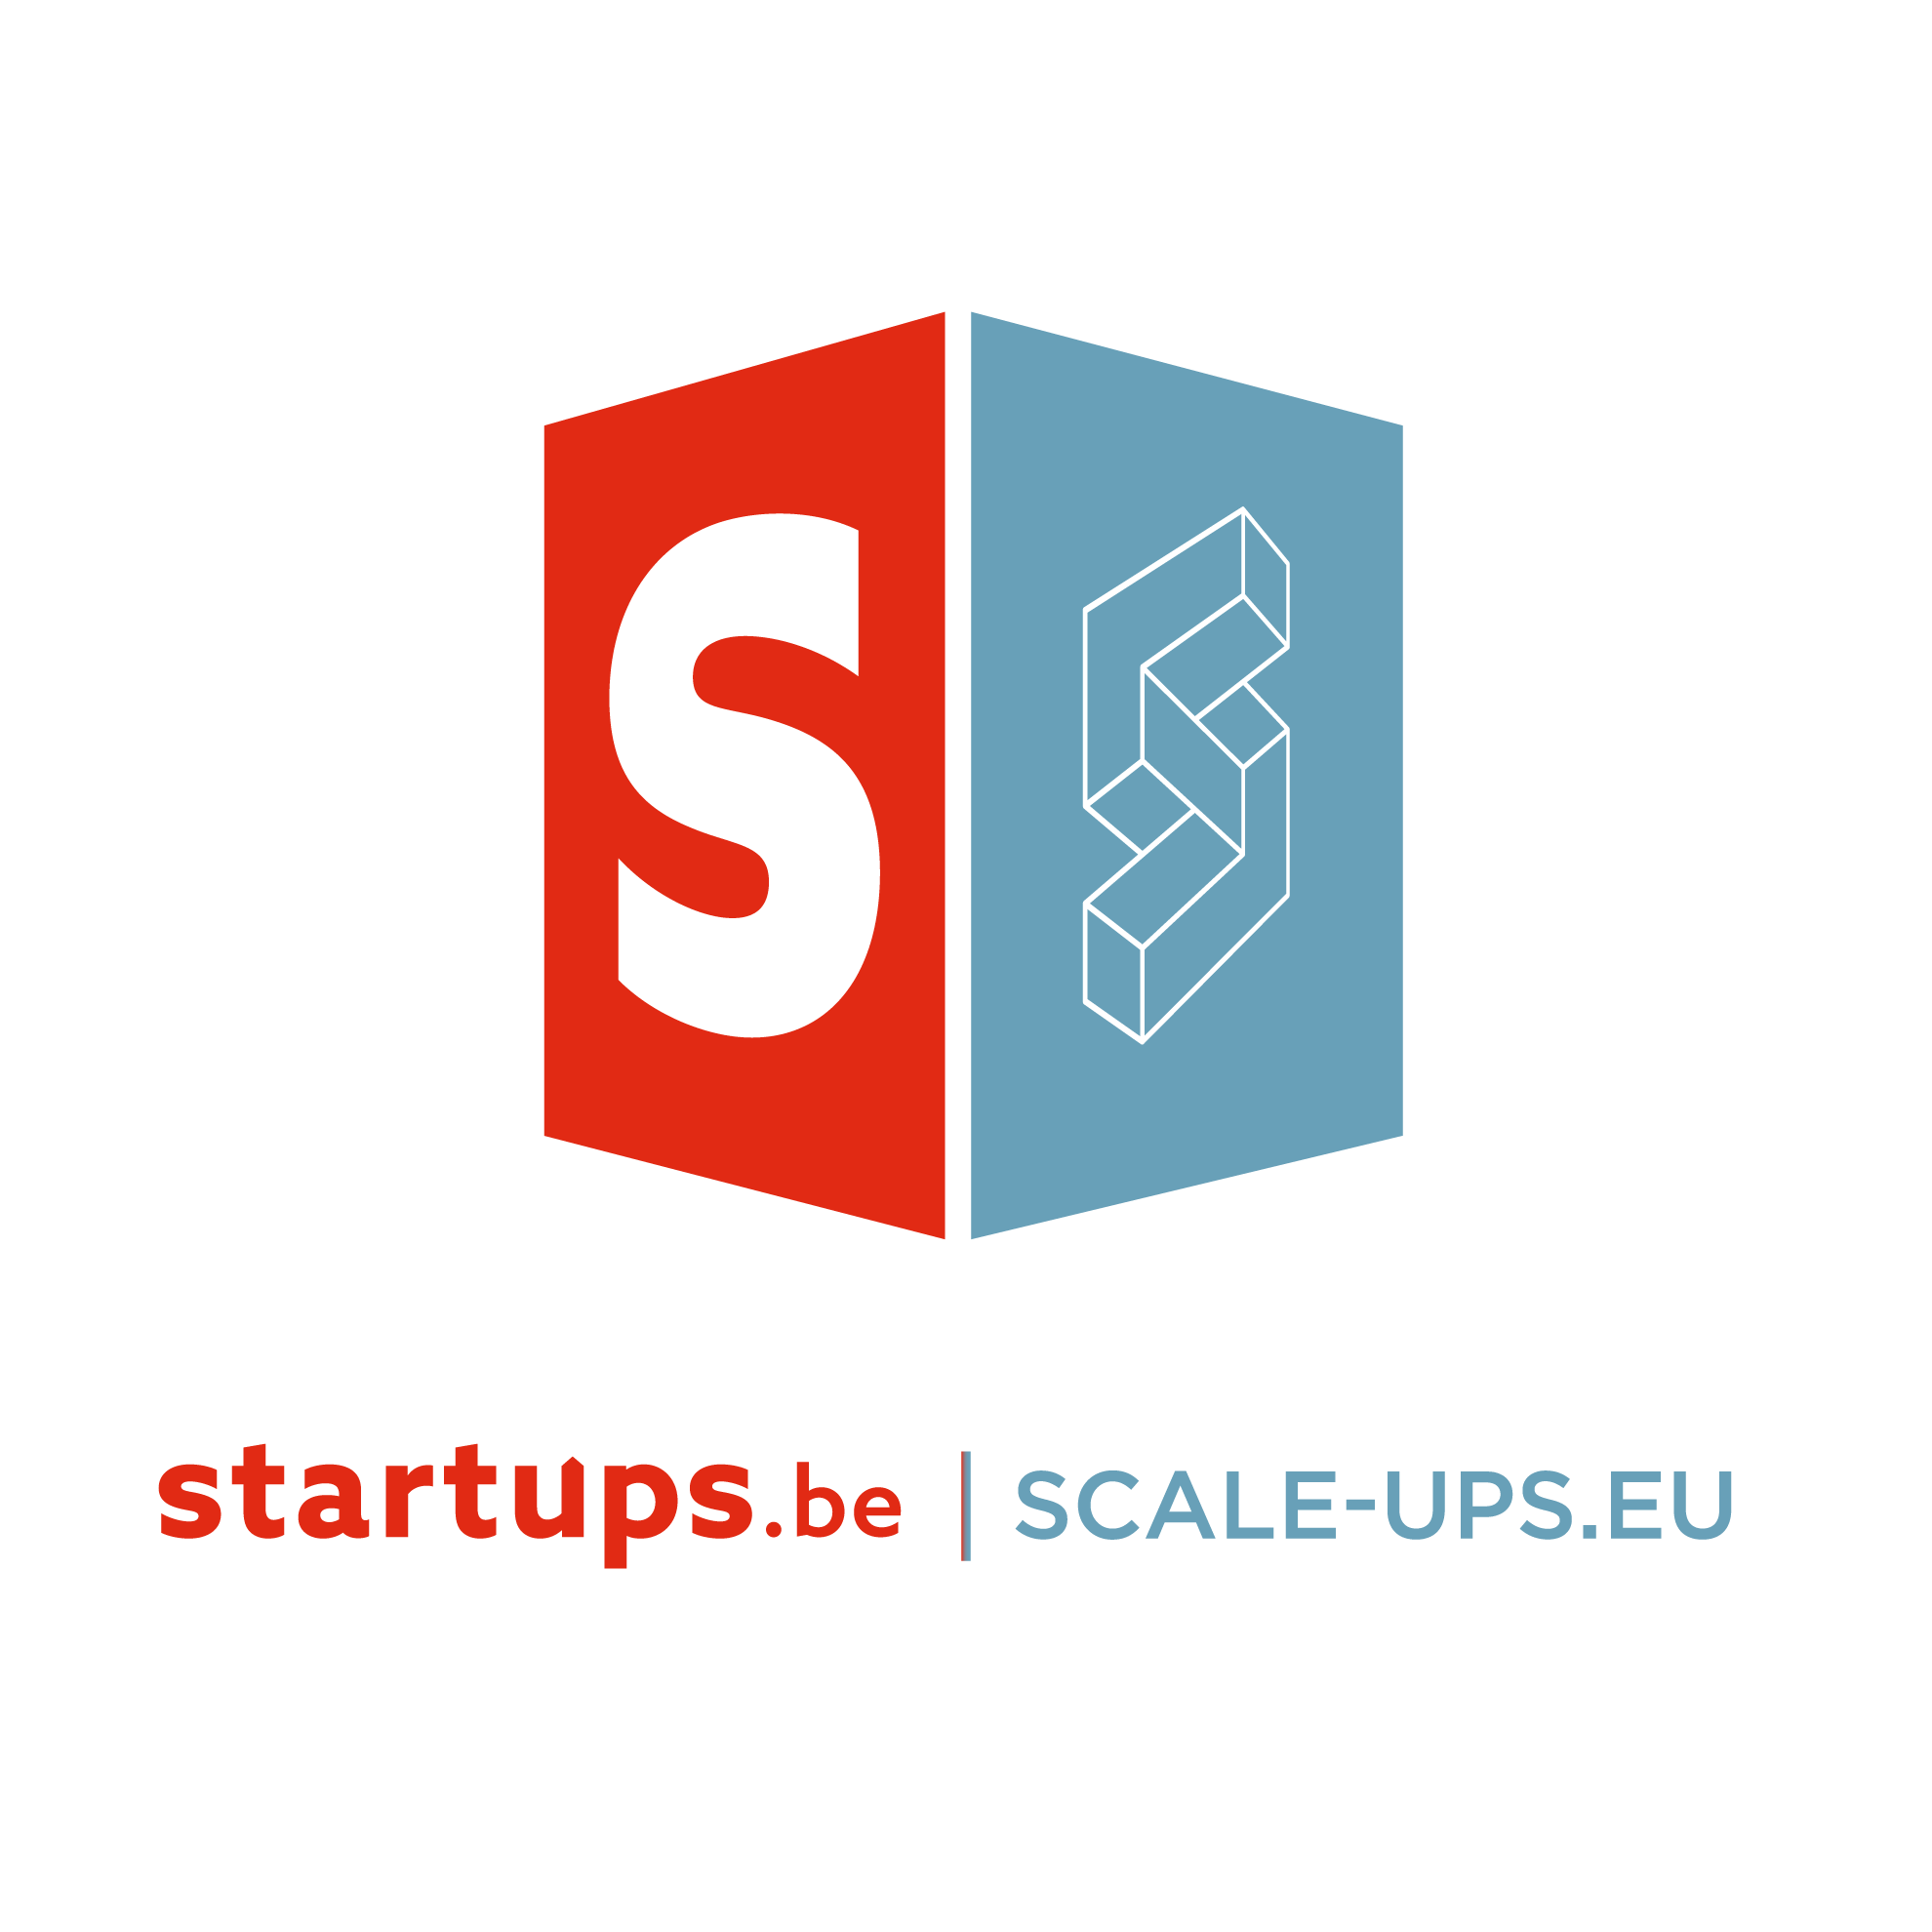 Startups.be | Scale-Ups.eu